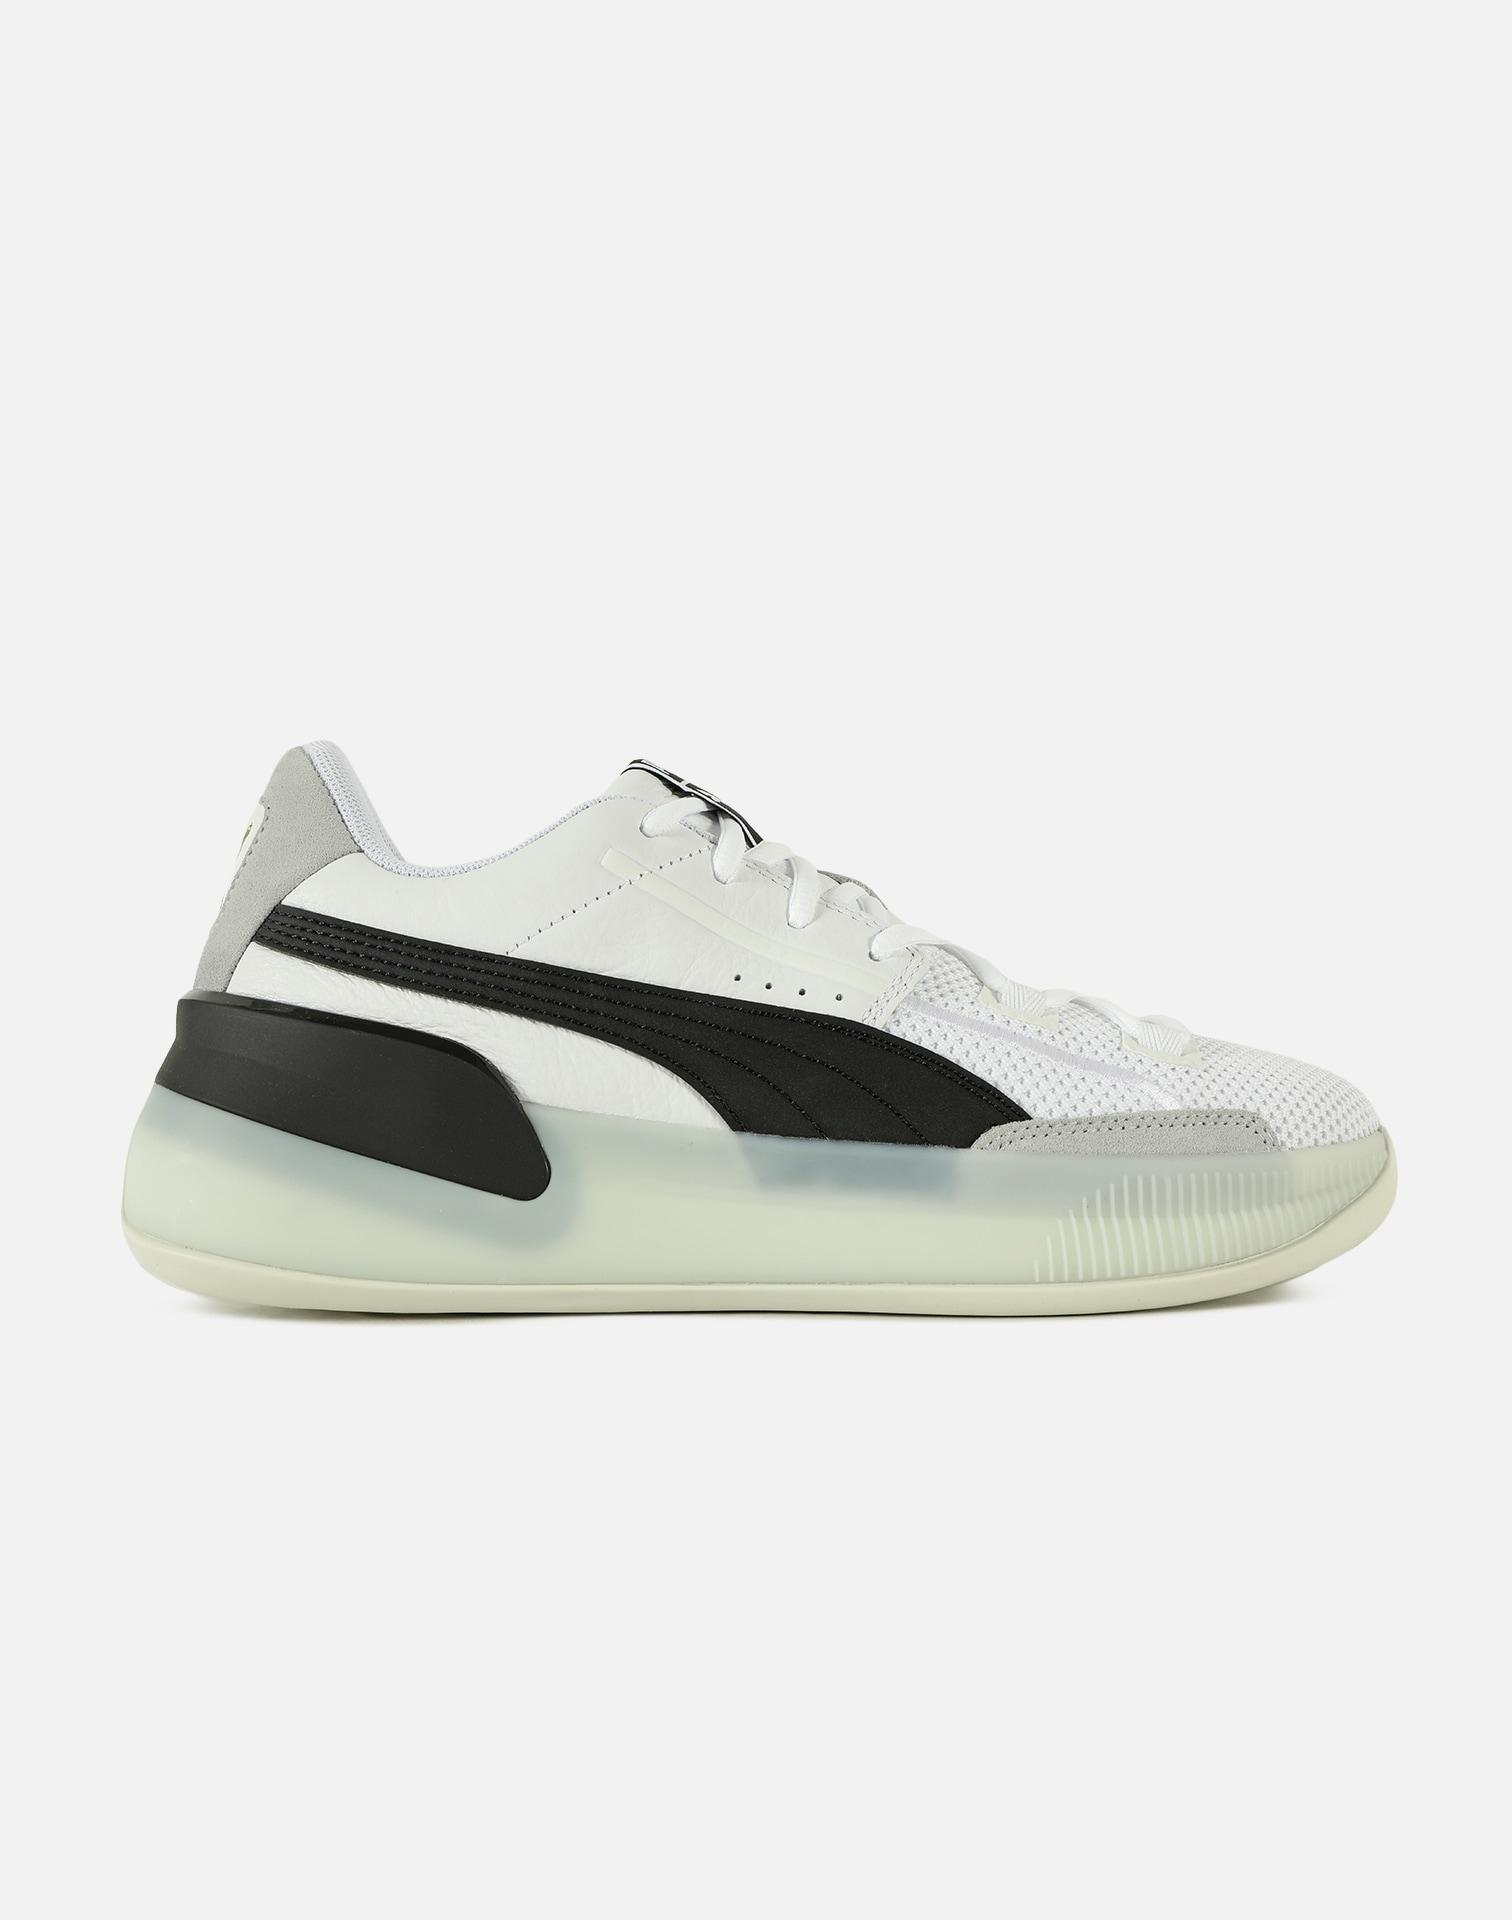 puma clyde basketball shoes price